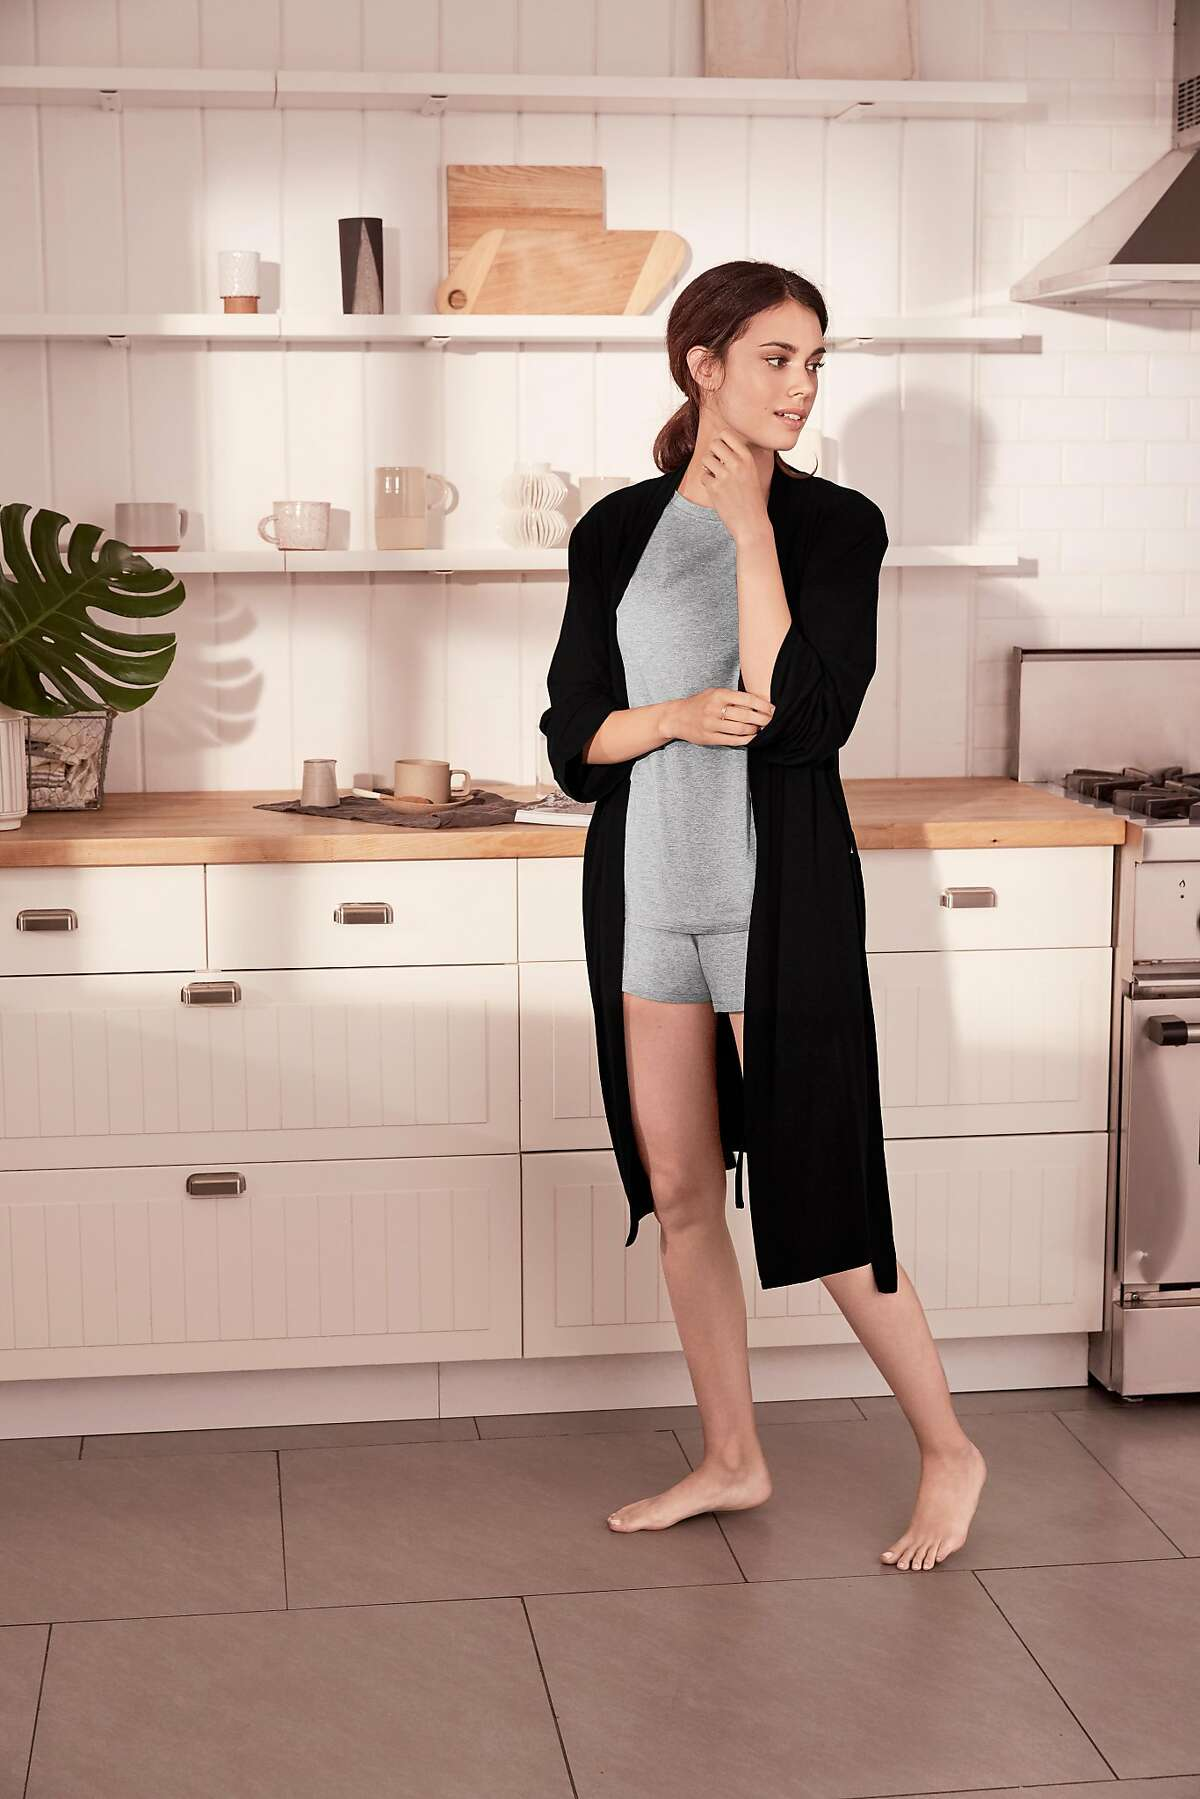 Originally focusing on comfortable bras, ThirdLove launched a lounge category in October last year, offering soft pants and shirt sets in black, pink and gray, and adding a wireless Lounge Bra to the mix.